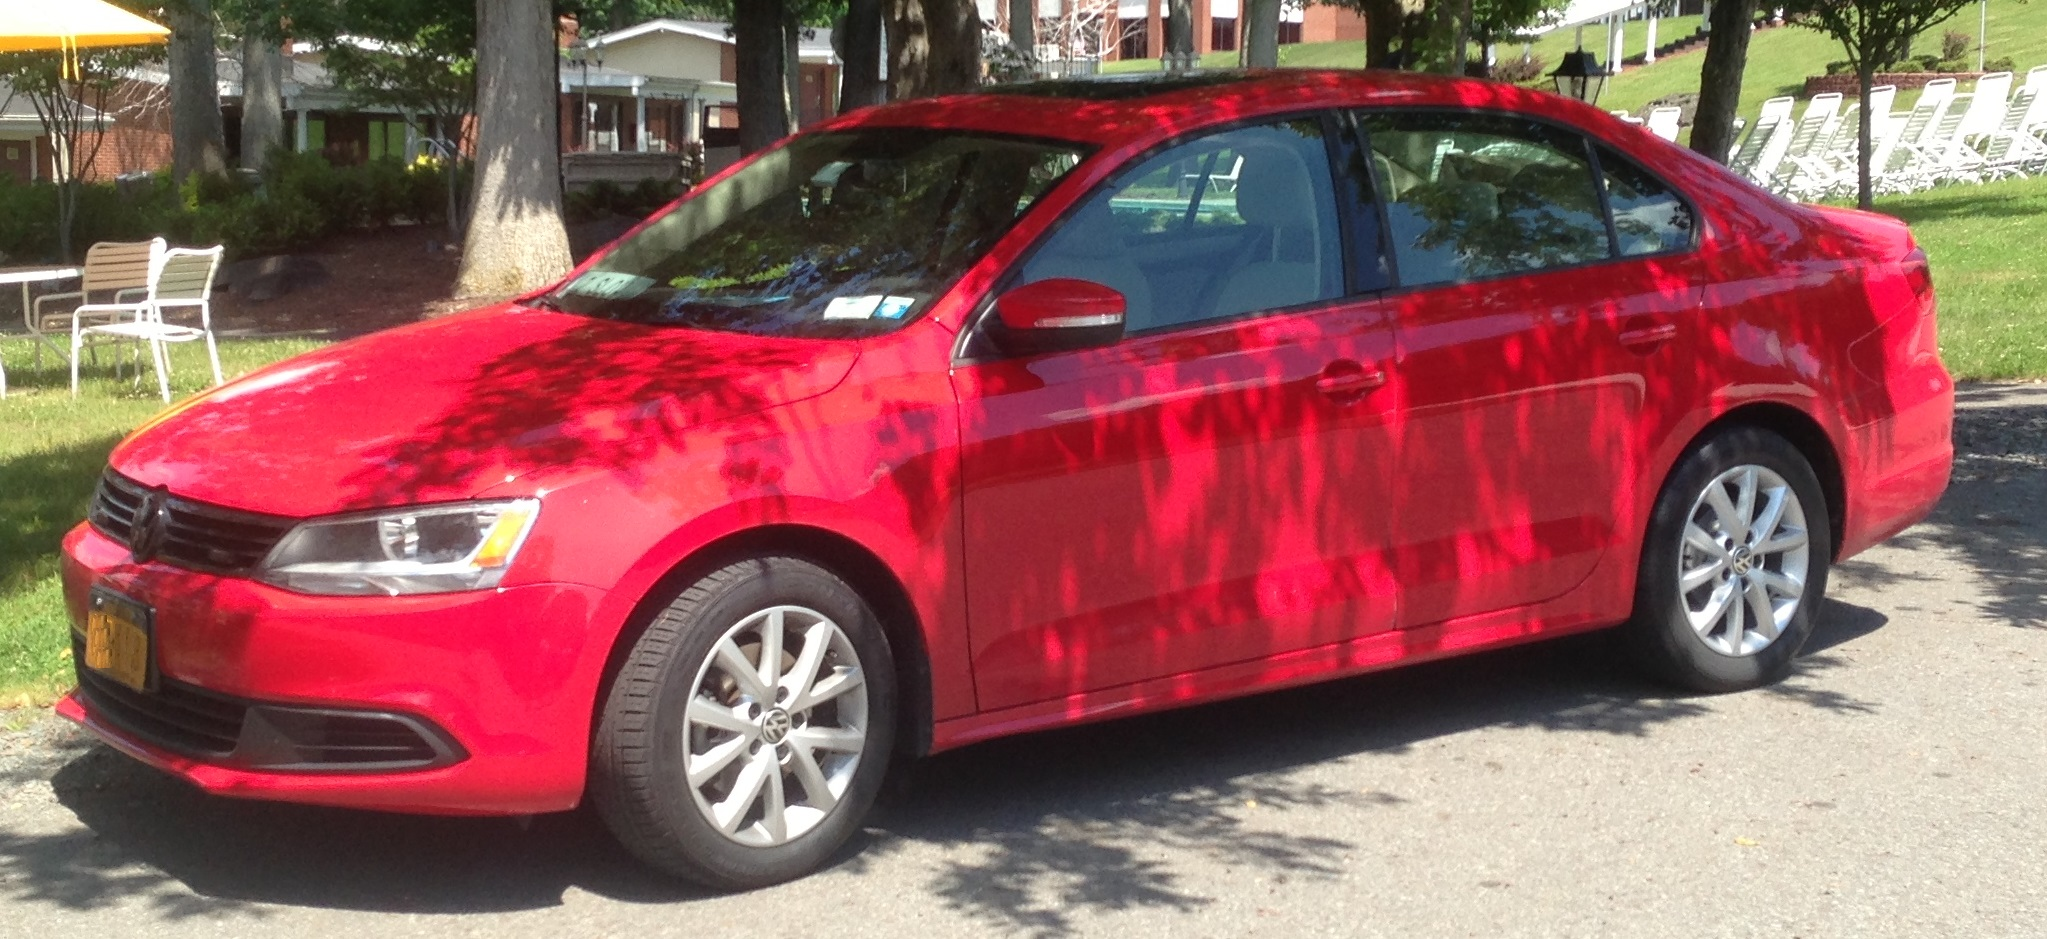 2012 Tornado Red Volkswagen Jetta SE picture, mods, upgrades